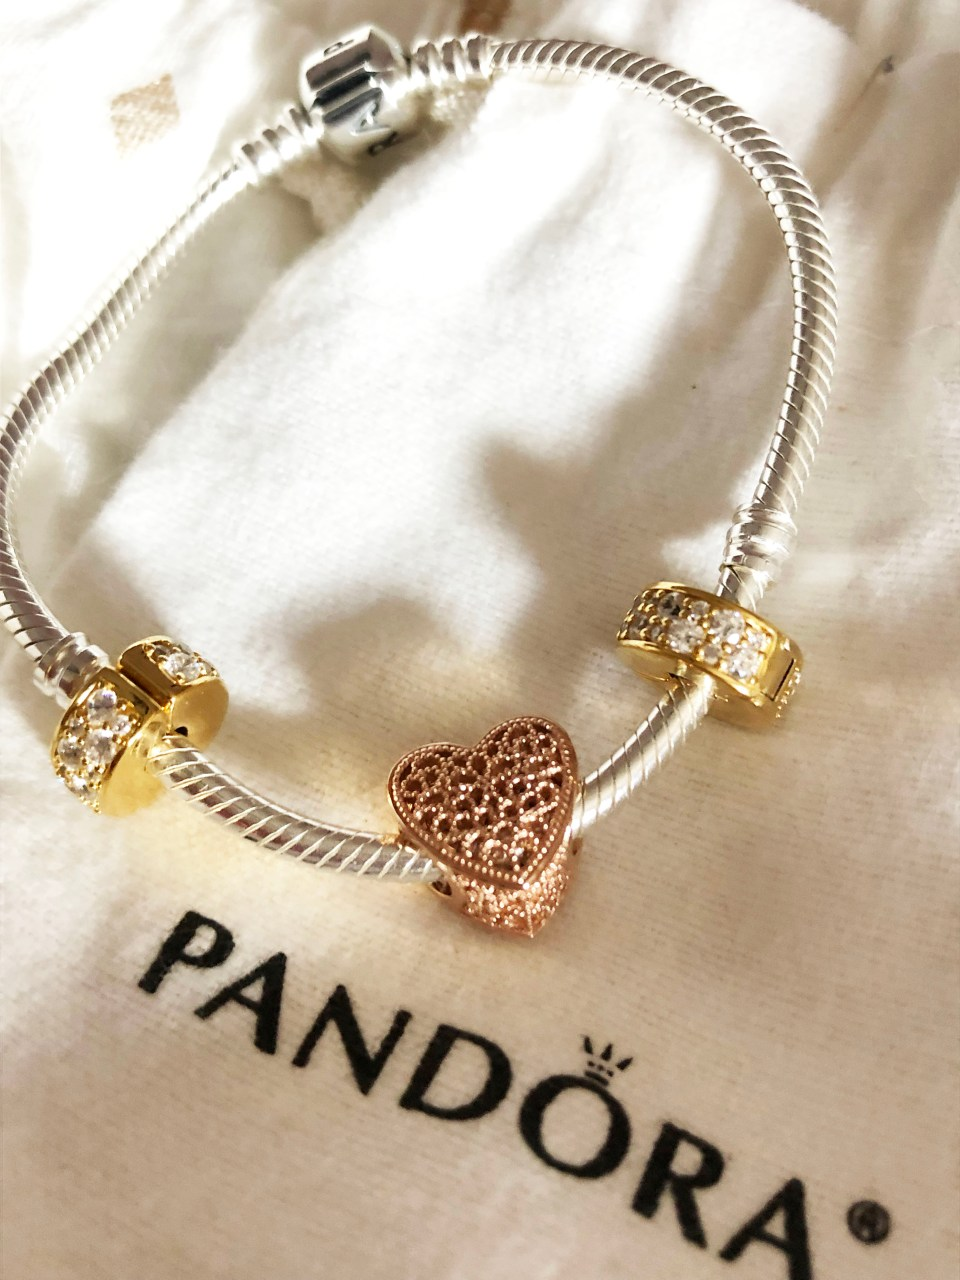 Pandora Bracelet - Filled with Romance Charm 2